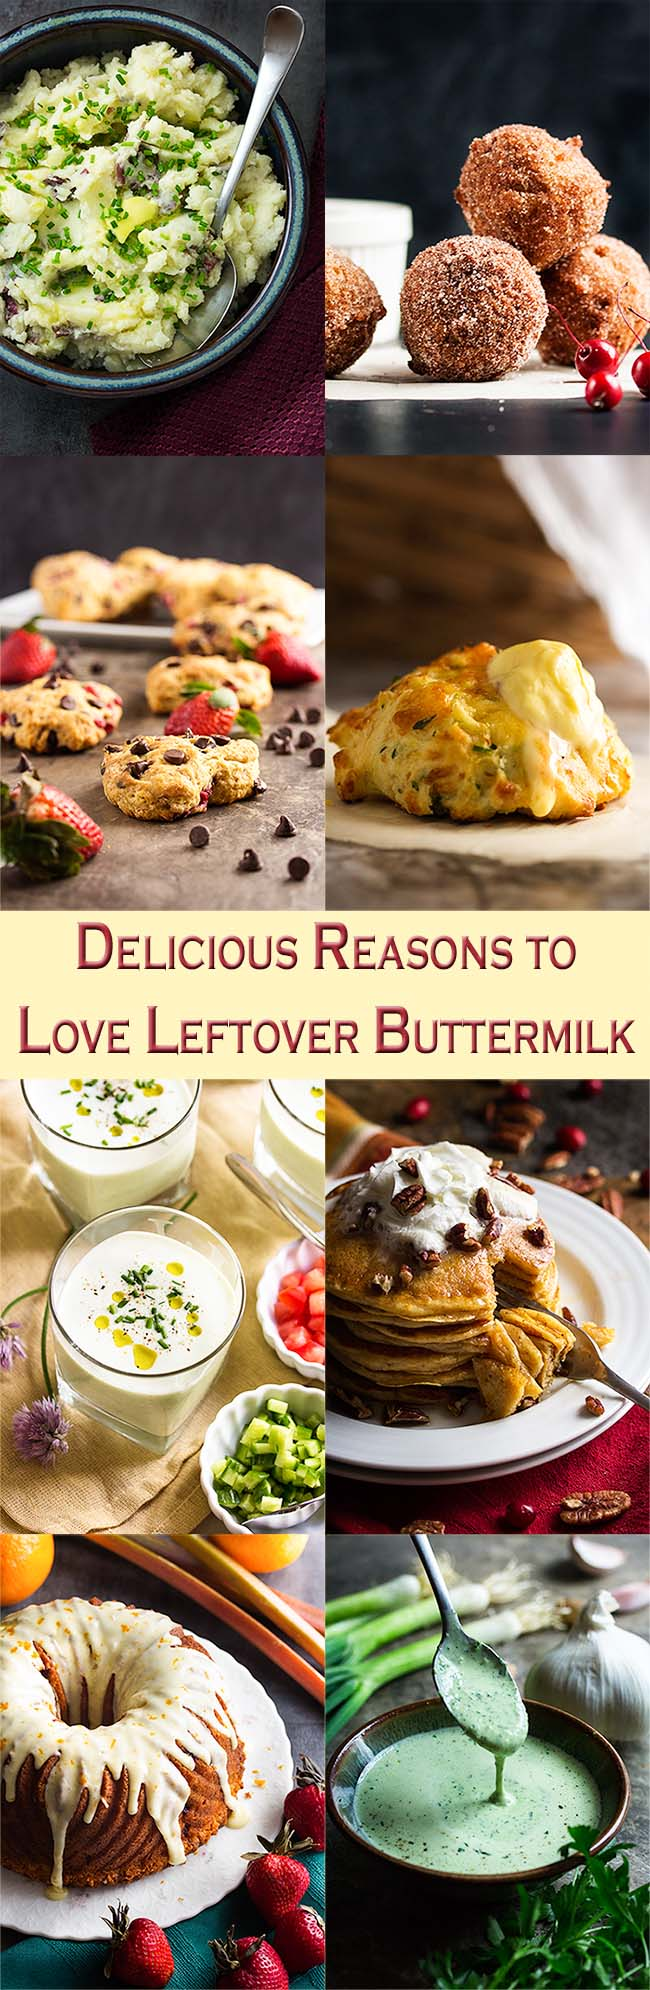 Have some leftover buttermilk sitting in your fridge? Don't know what to do with it? I have a pile of yummy recipes which will have you finishing off that buttermilk in no time! | justalittlebitofbacon.com